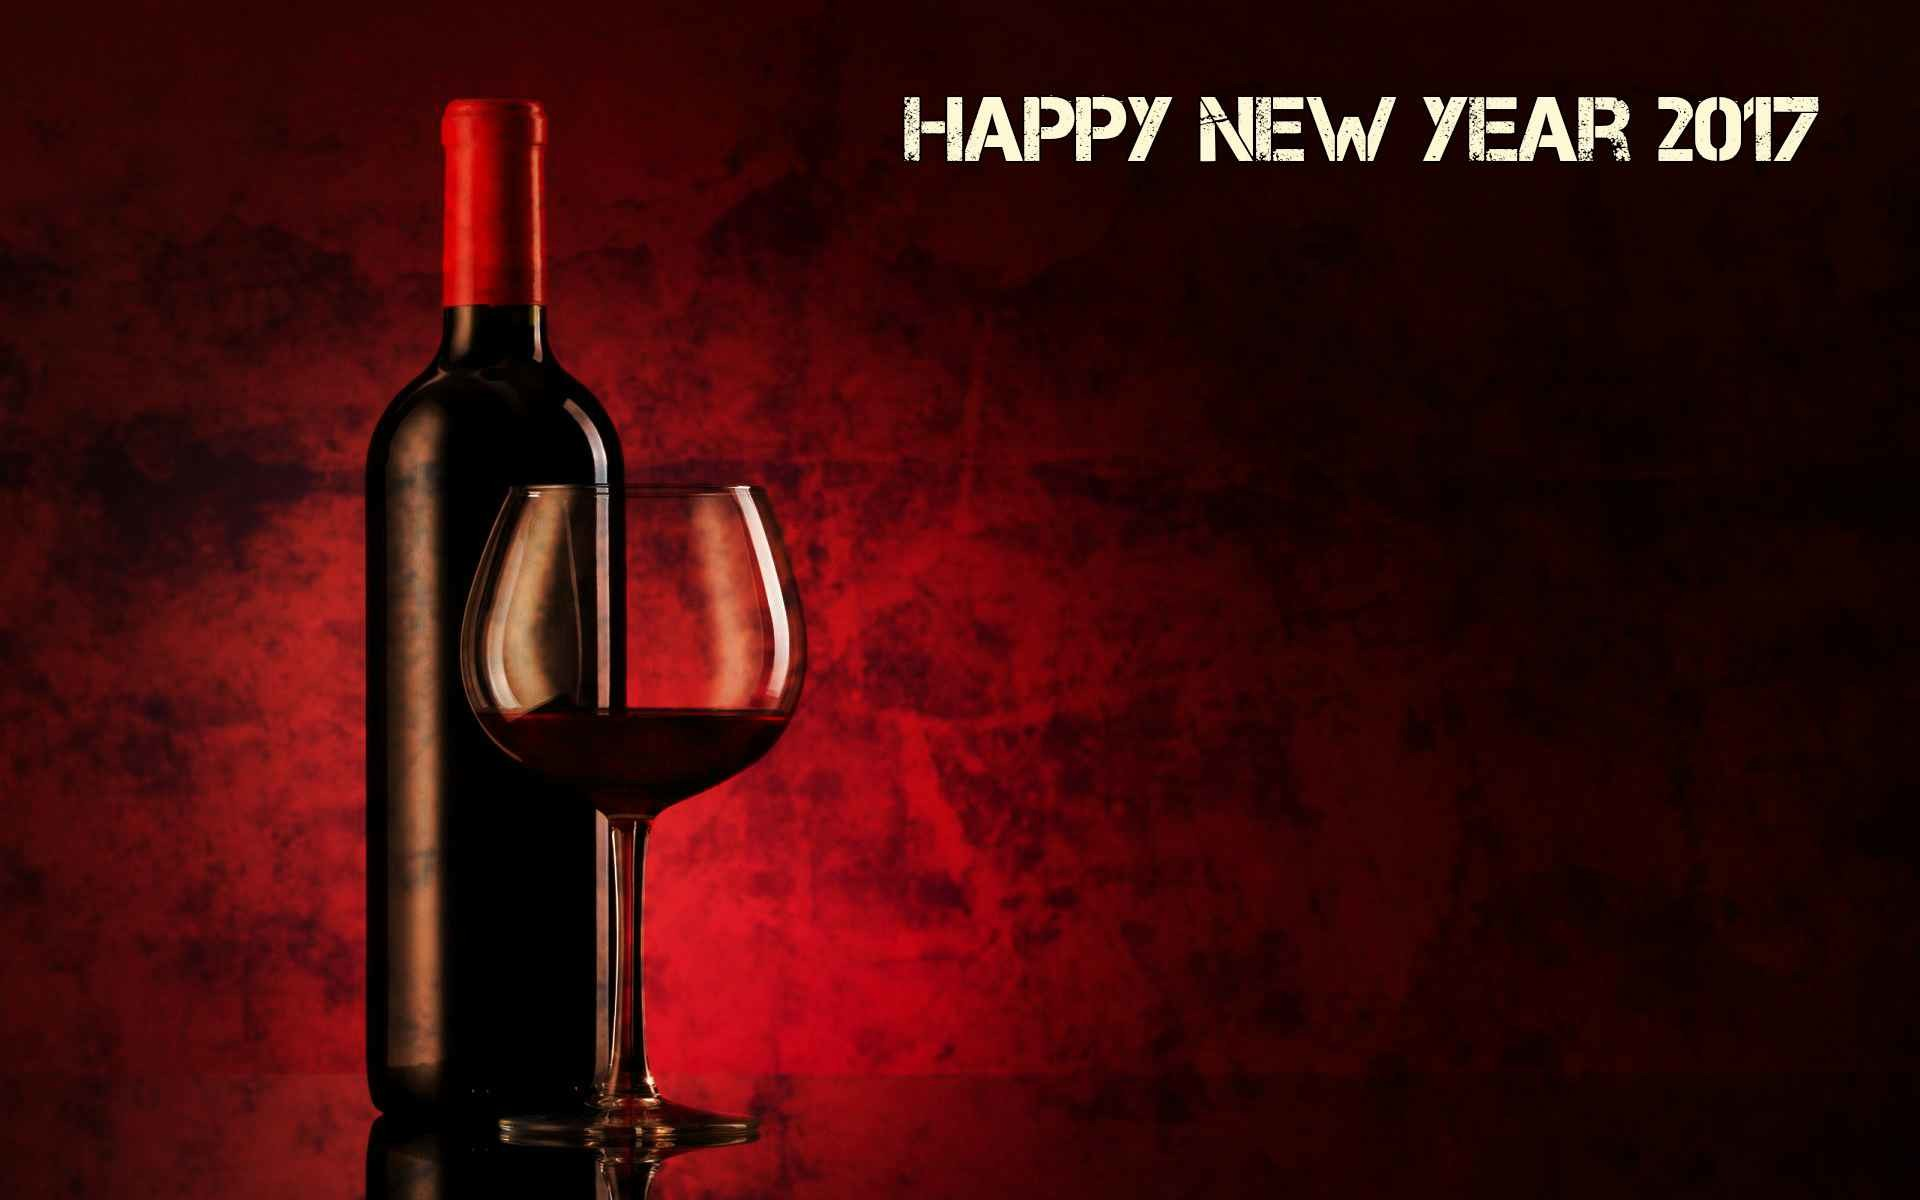 happy new year 2017 images wallpapers photos pictures